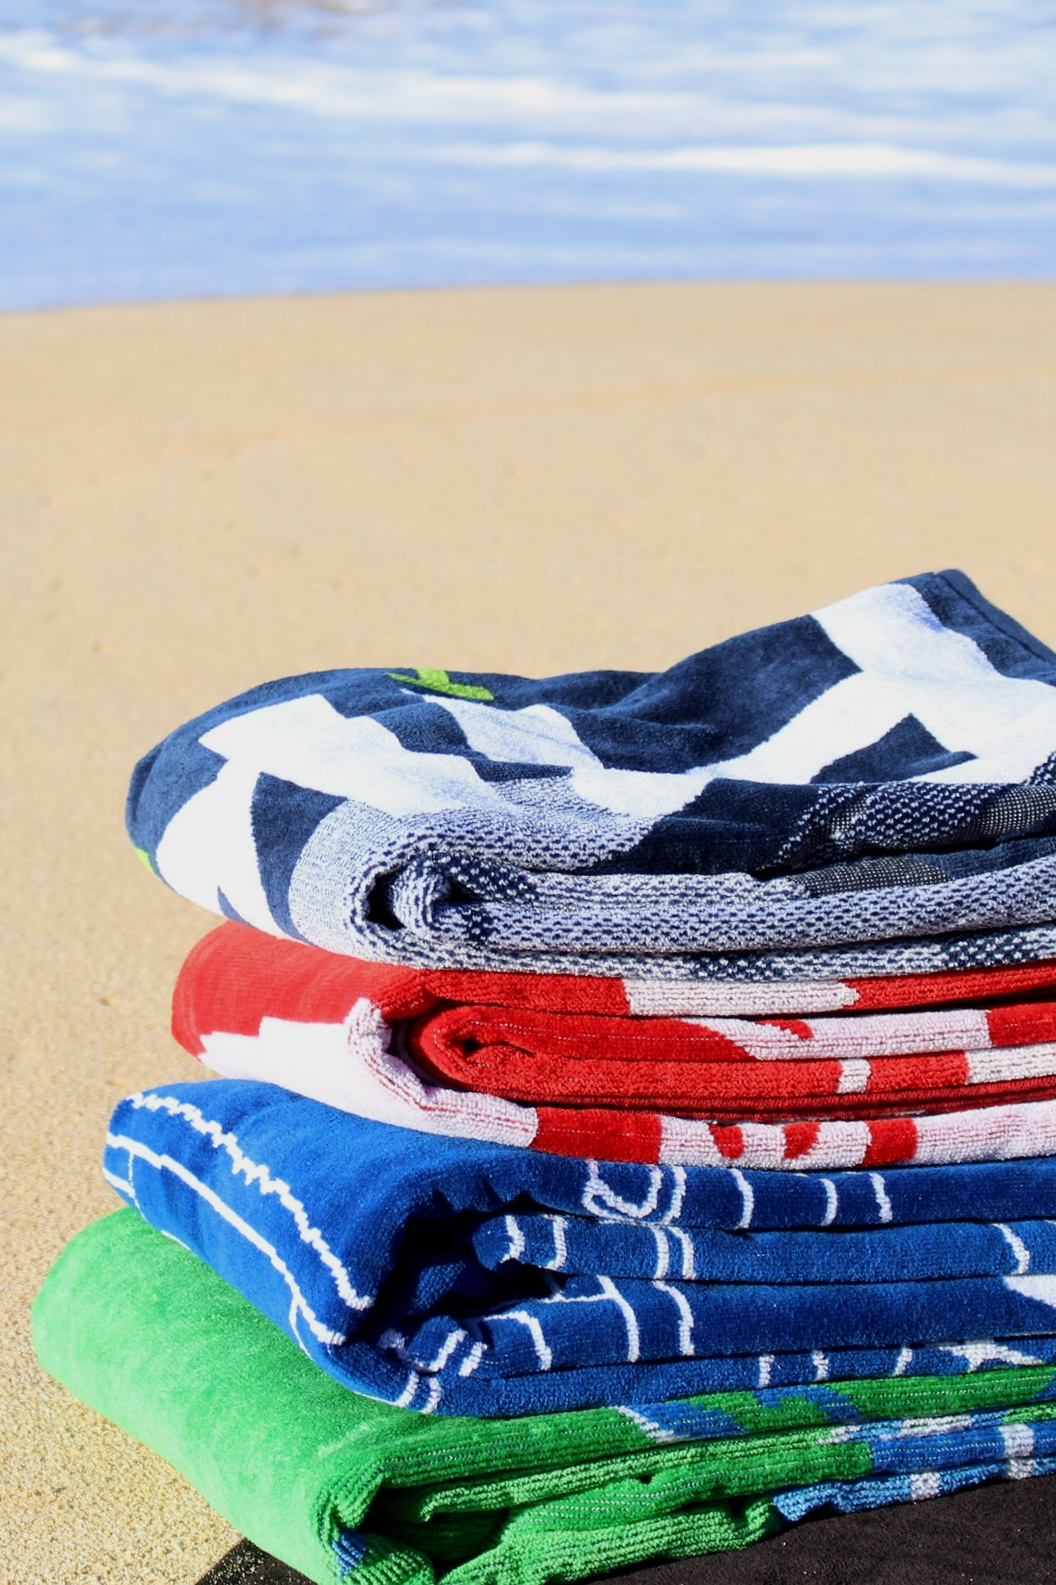 Towels - Luxurious beach, sport and golf towels made of 100% cotton. A woven design will withstand the test of time versus sublimation or screen-printing. It will not fade or wash away. Our towels will remain soft and absorbent for years to come.